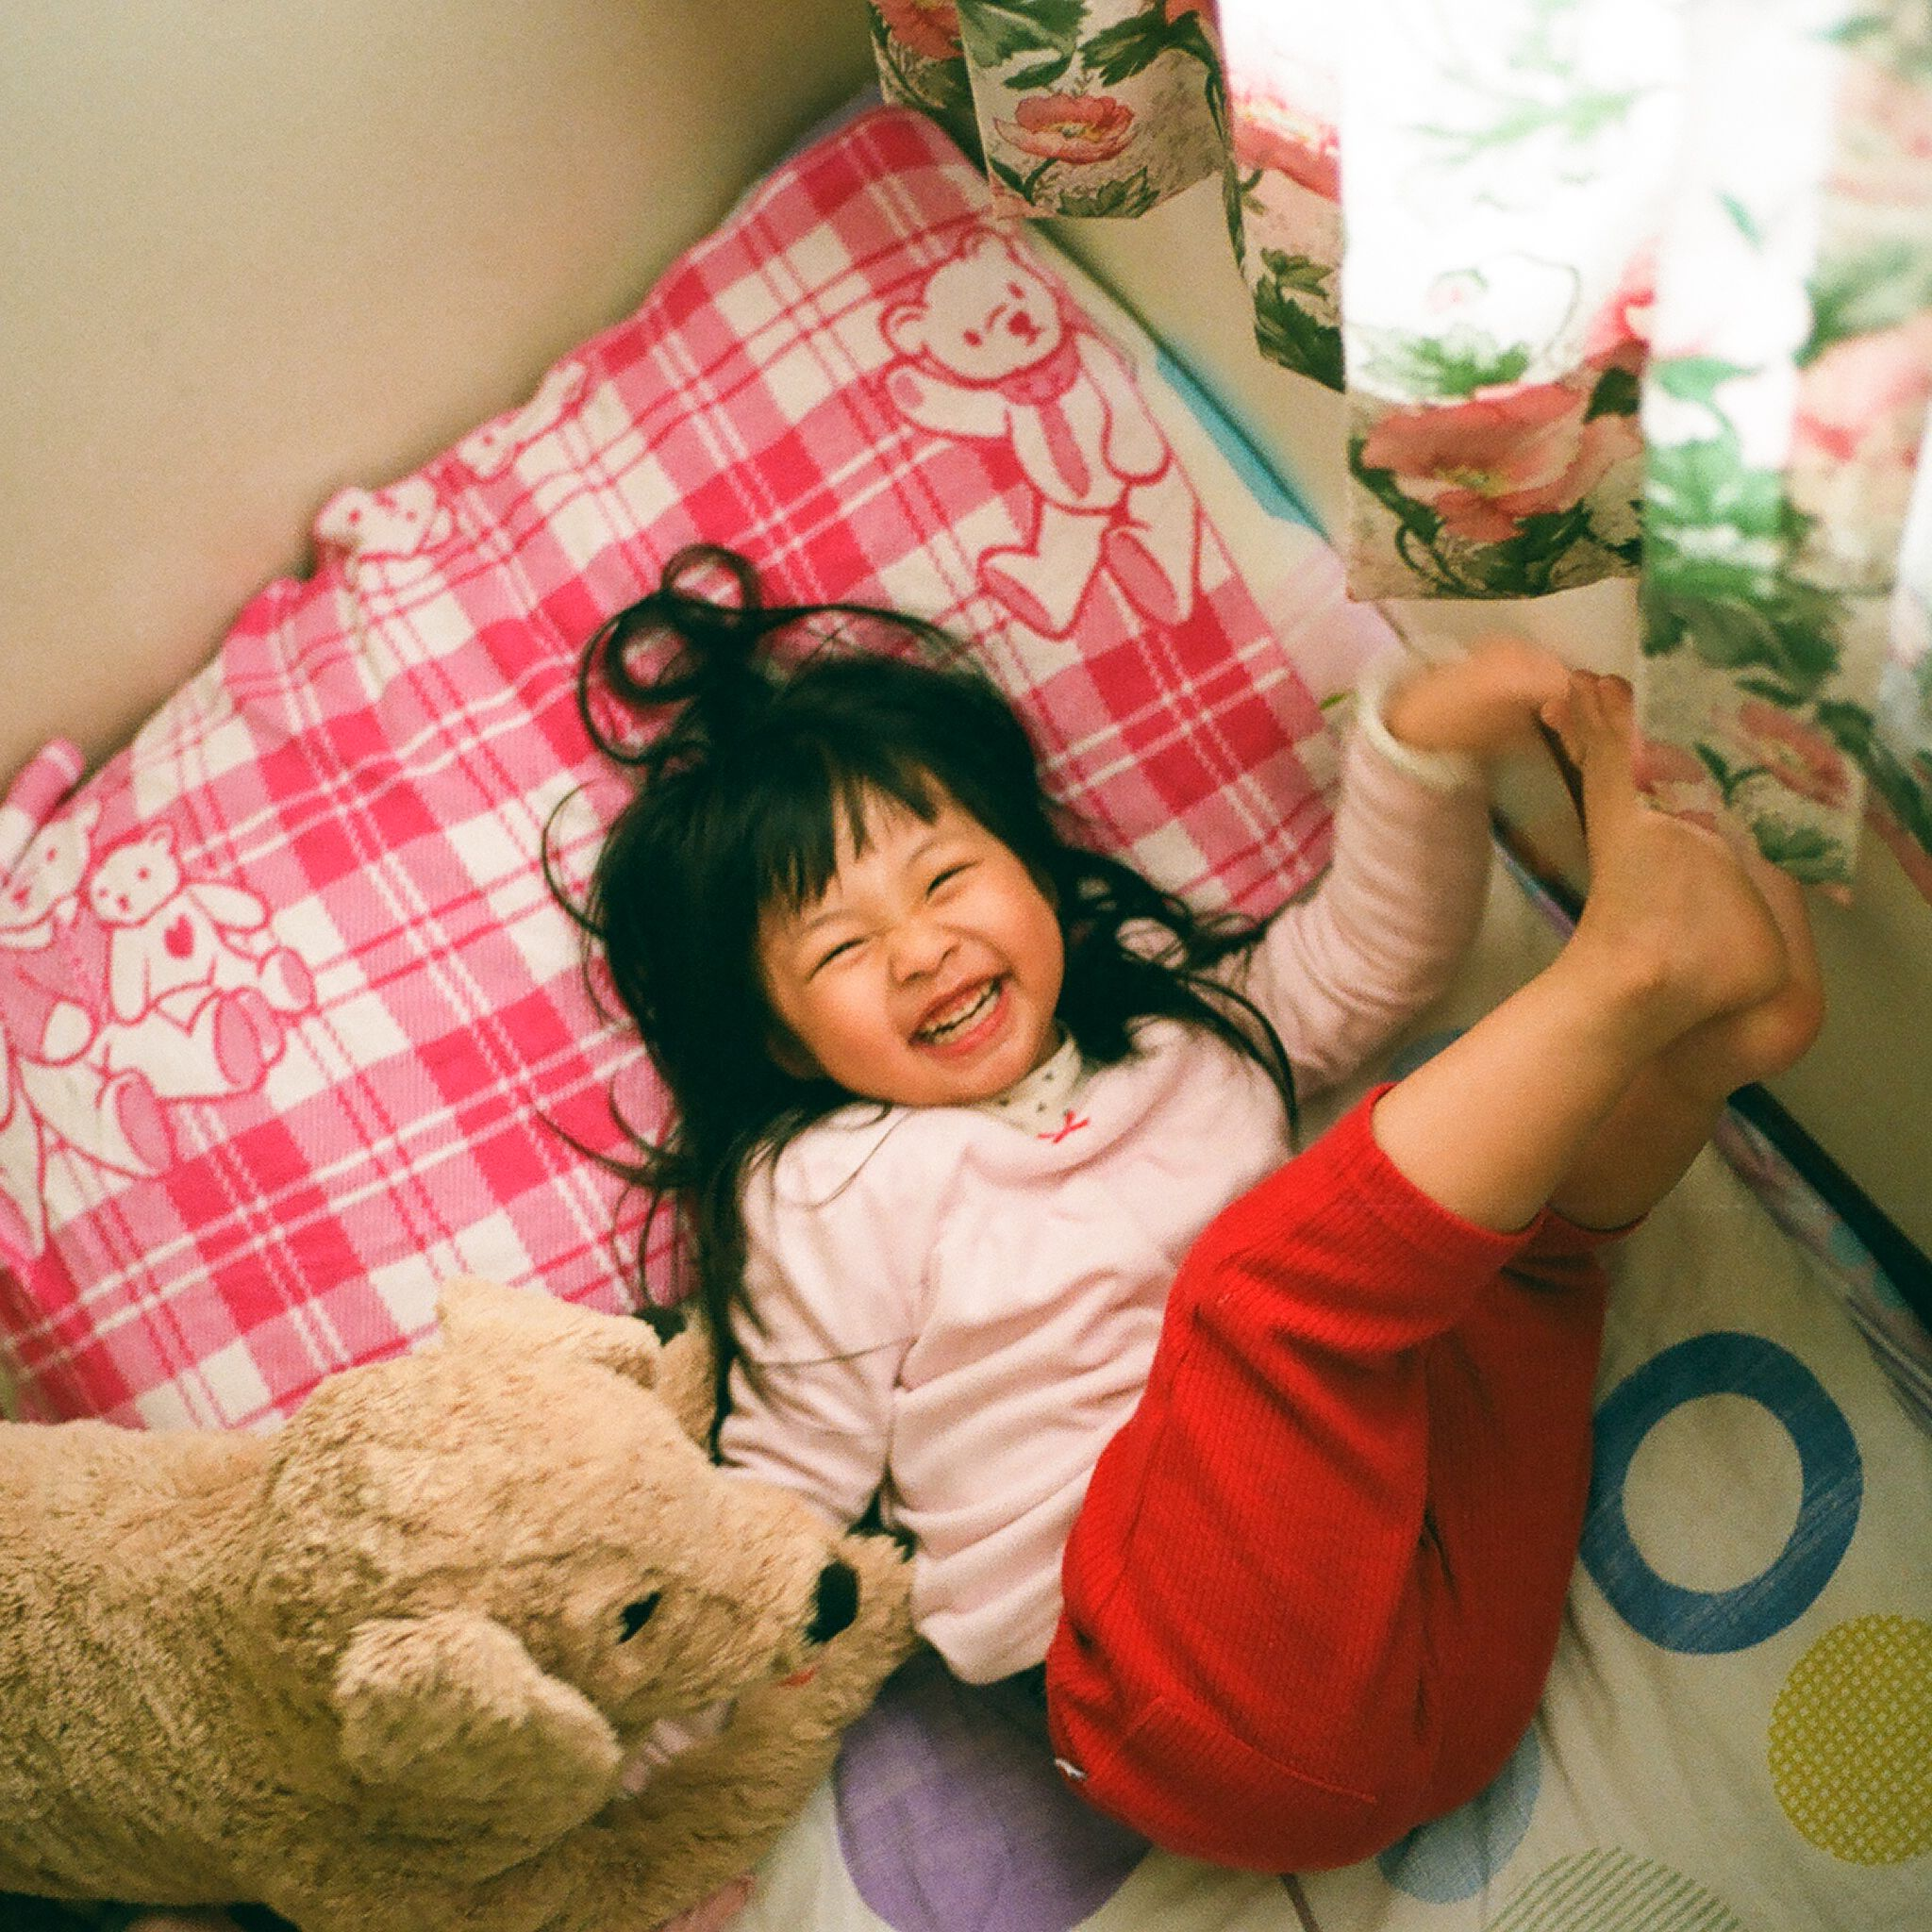 Bedtime Meltdowns and Getting Your Toddler to Sleep